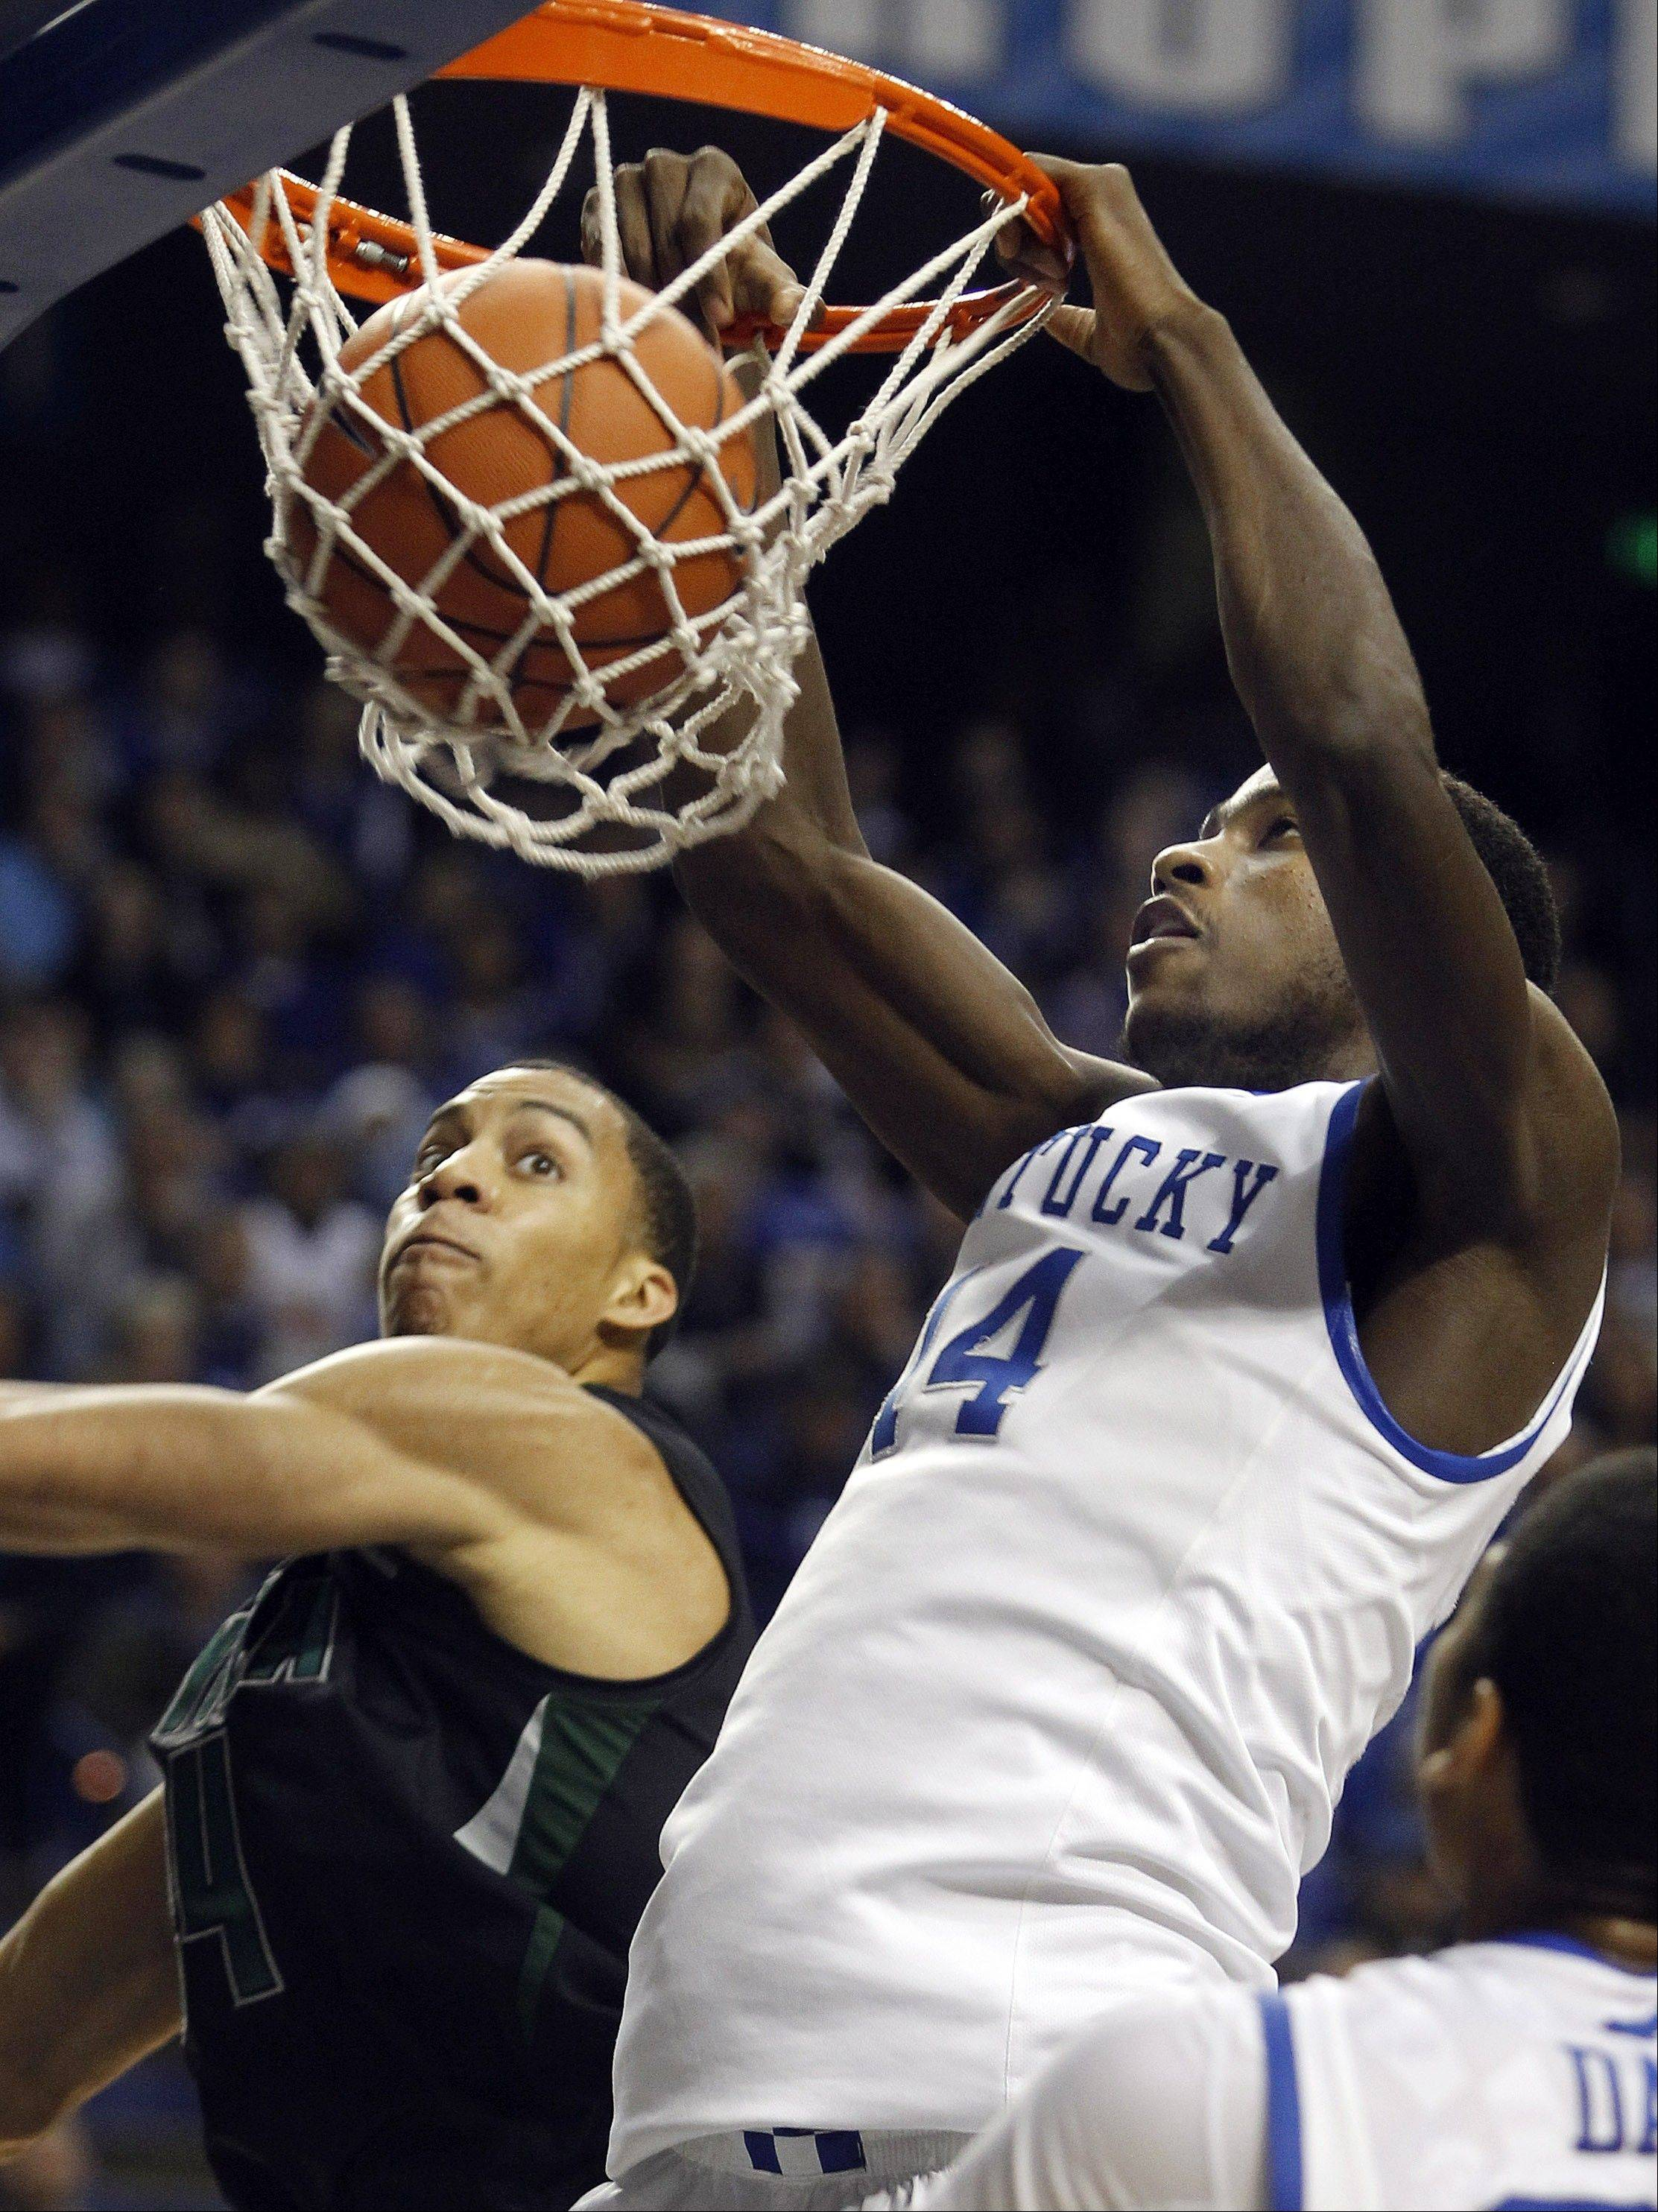 Kentucky�s Michael Kidd-Gilchrist, right, dunks on Loyola�s Erik Etherly Thursday in Lexington, Ky.